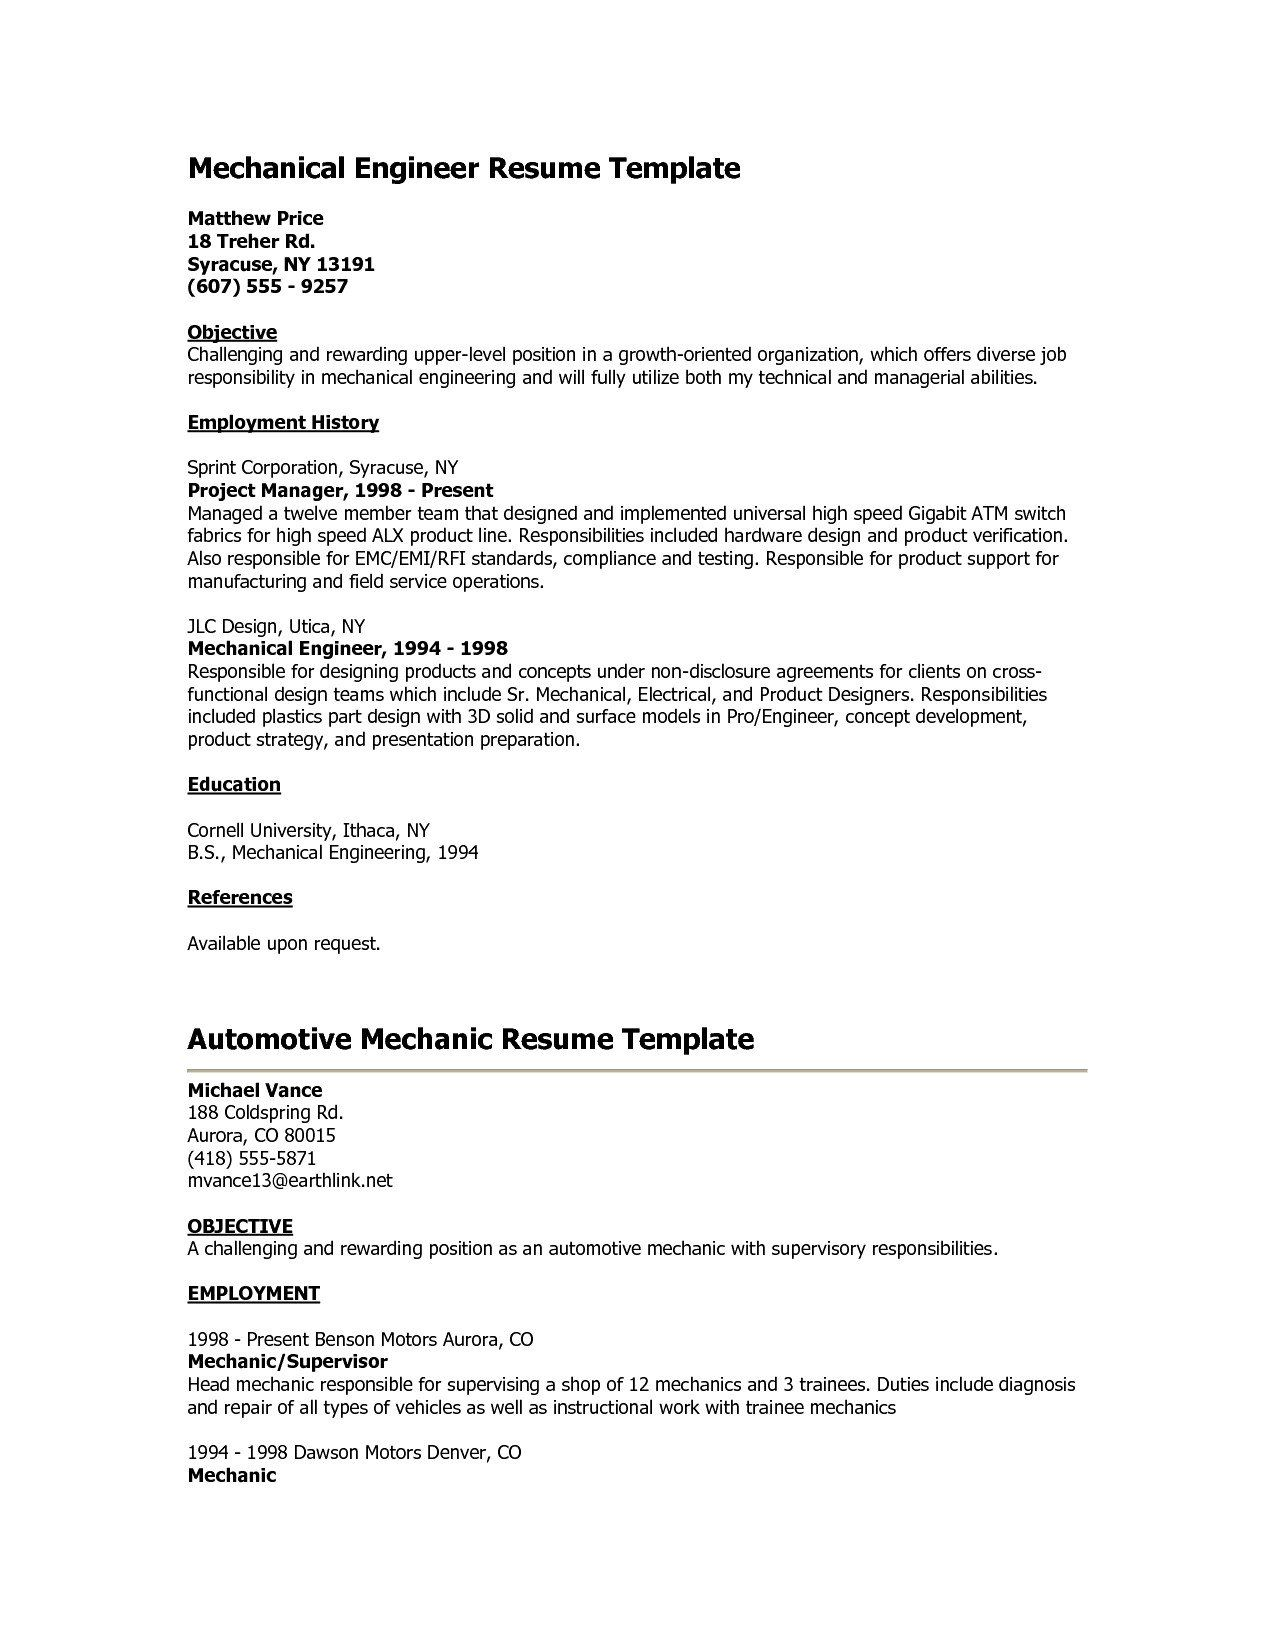 pin on resume for job universal banker description free indesign template product manager Resume Universal Banker Job Description For Resume